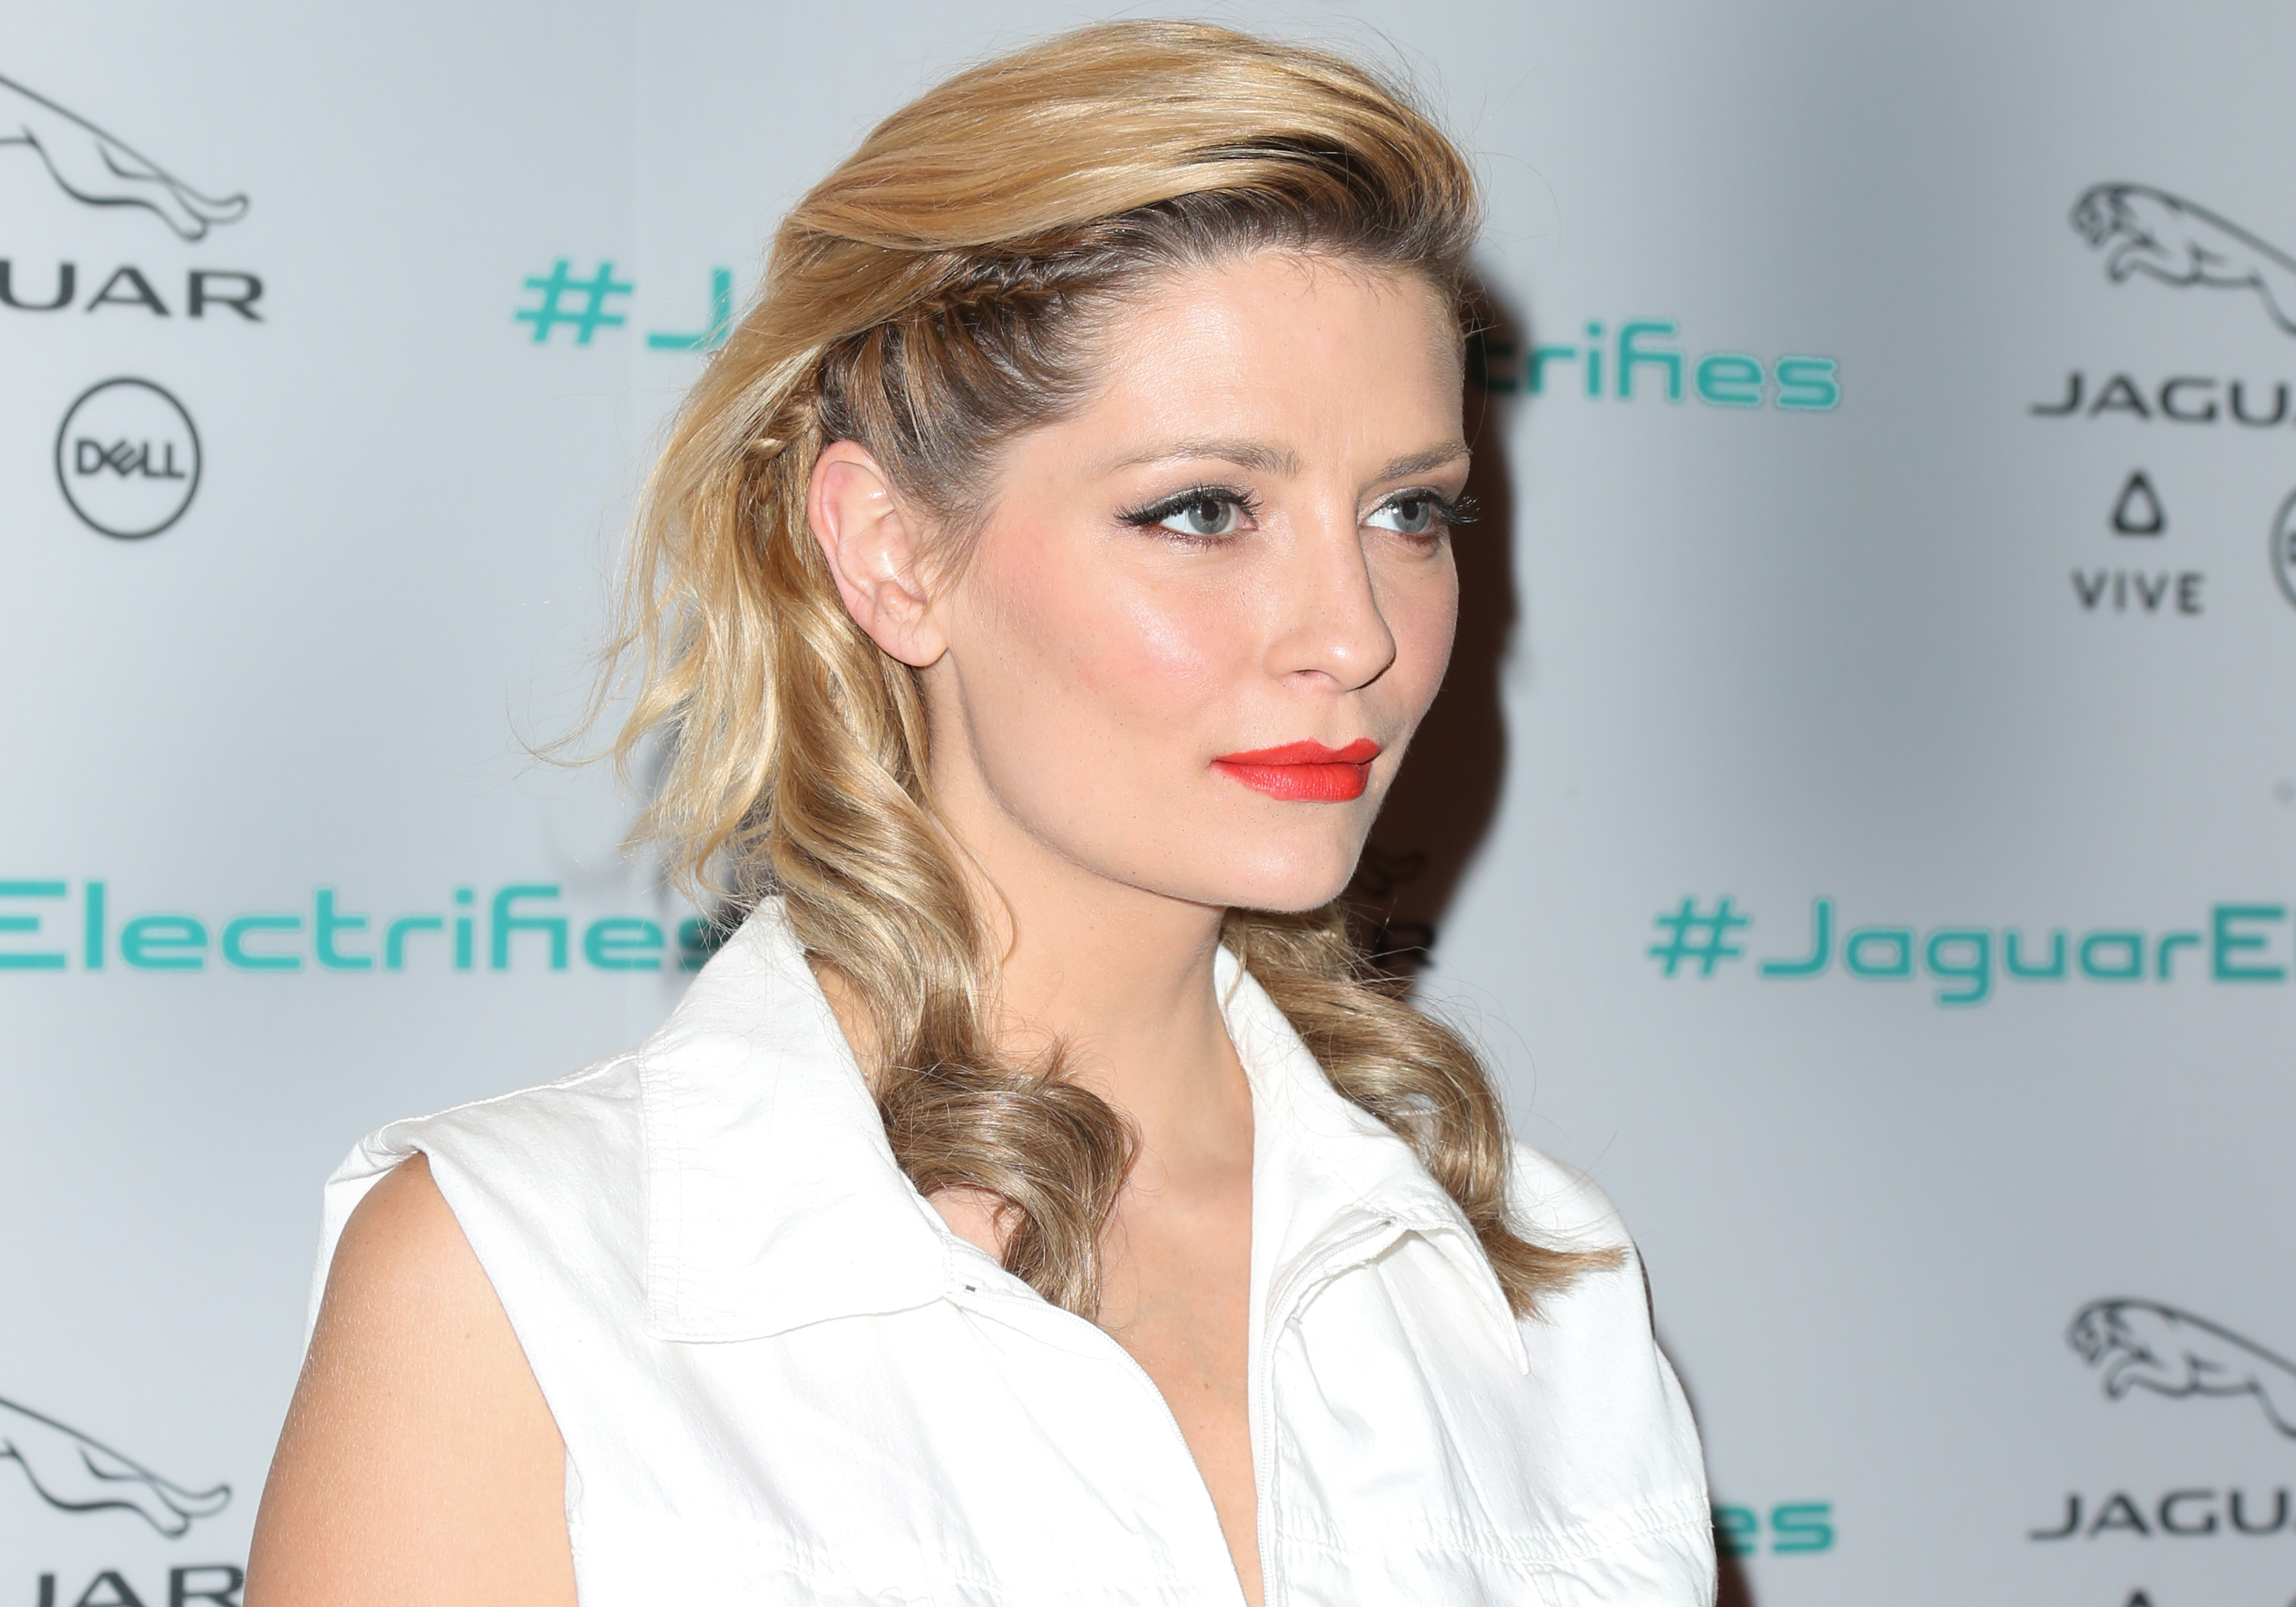 What is going on with Mischa Barton